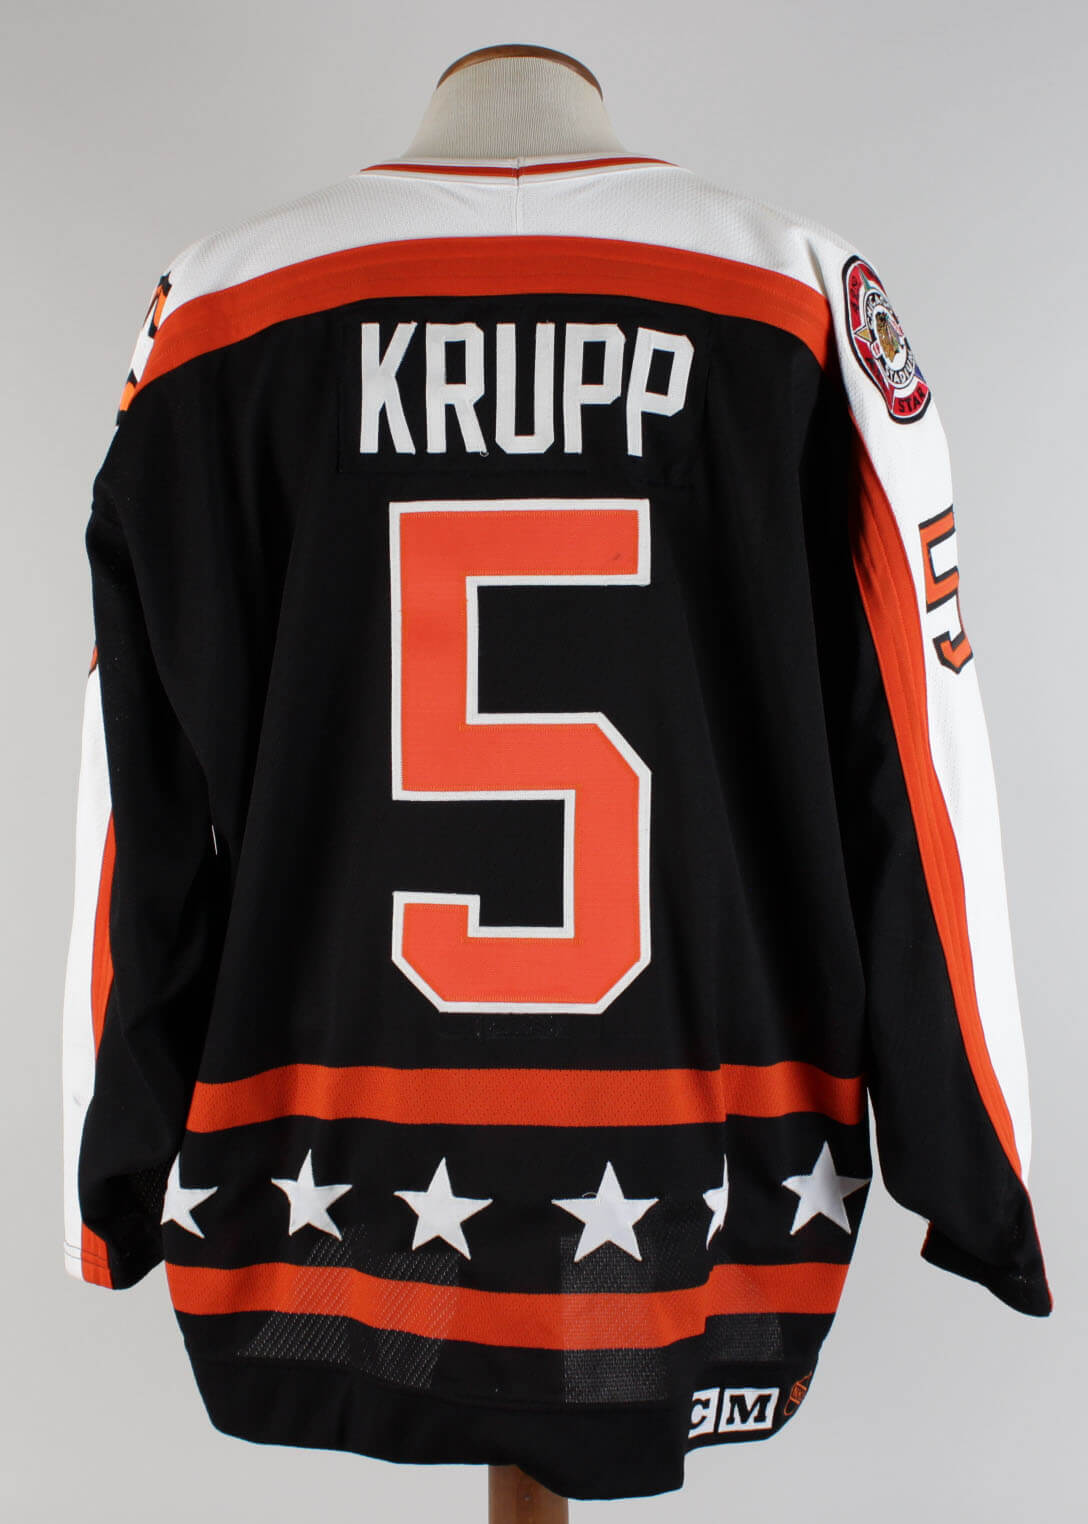 1990-91 NHL All Star Game – Uwe Krupp Game-Worn Hockey Jersey (100%  Authentic LOA a60489d5a97